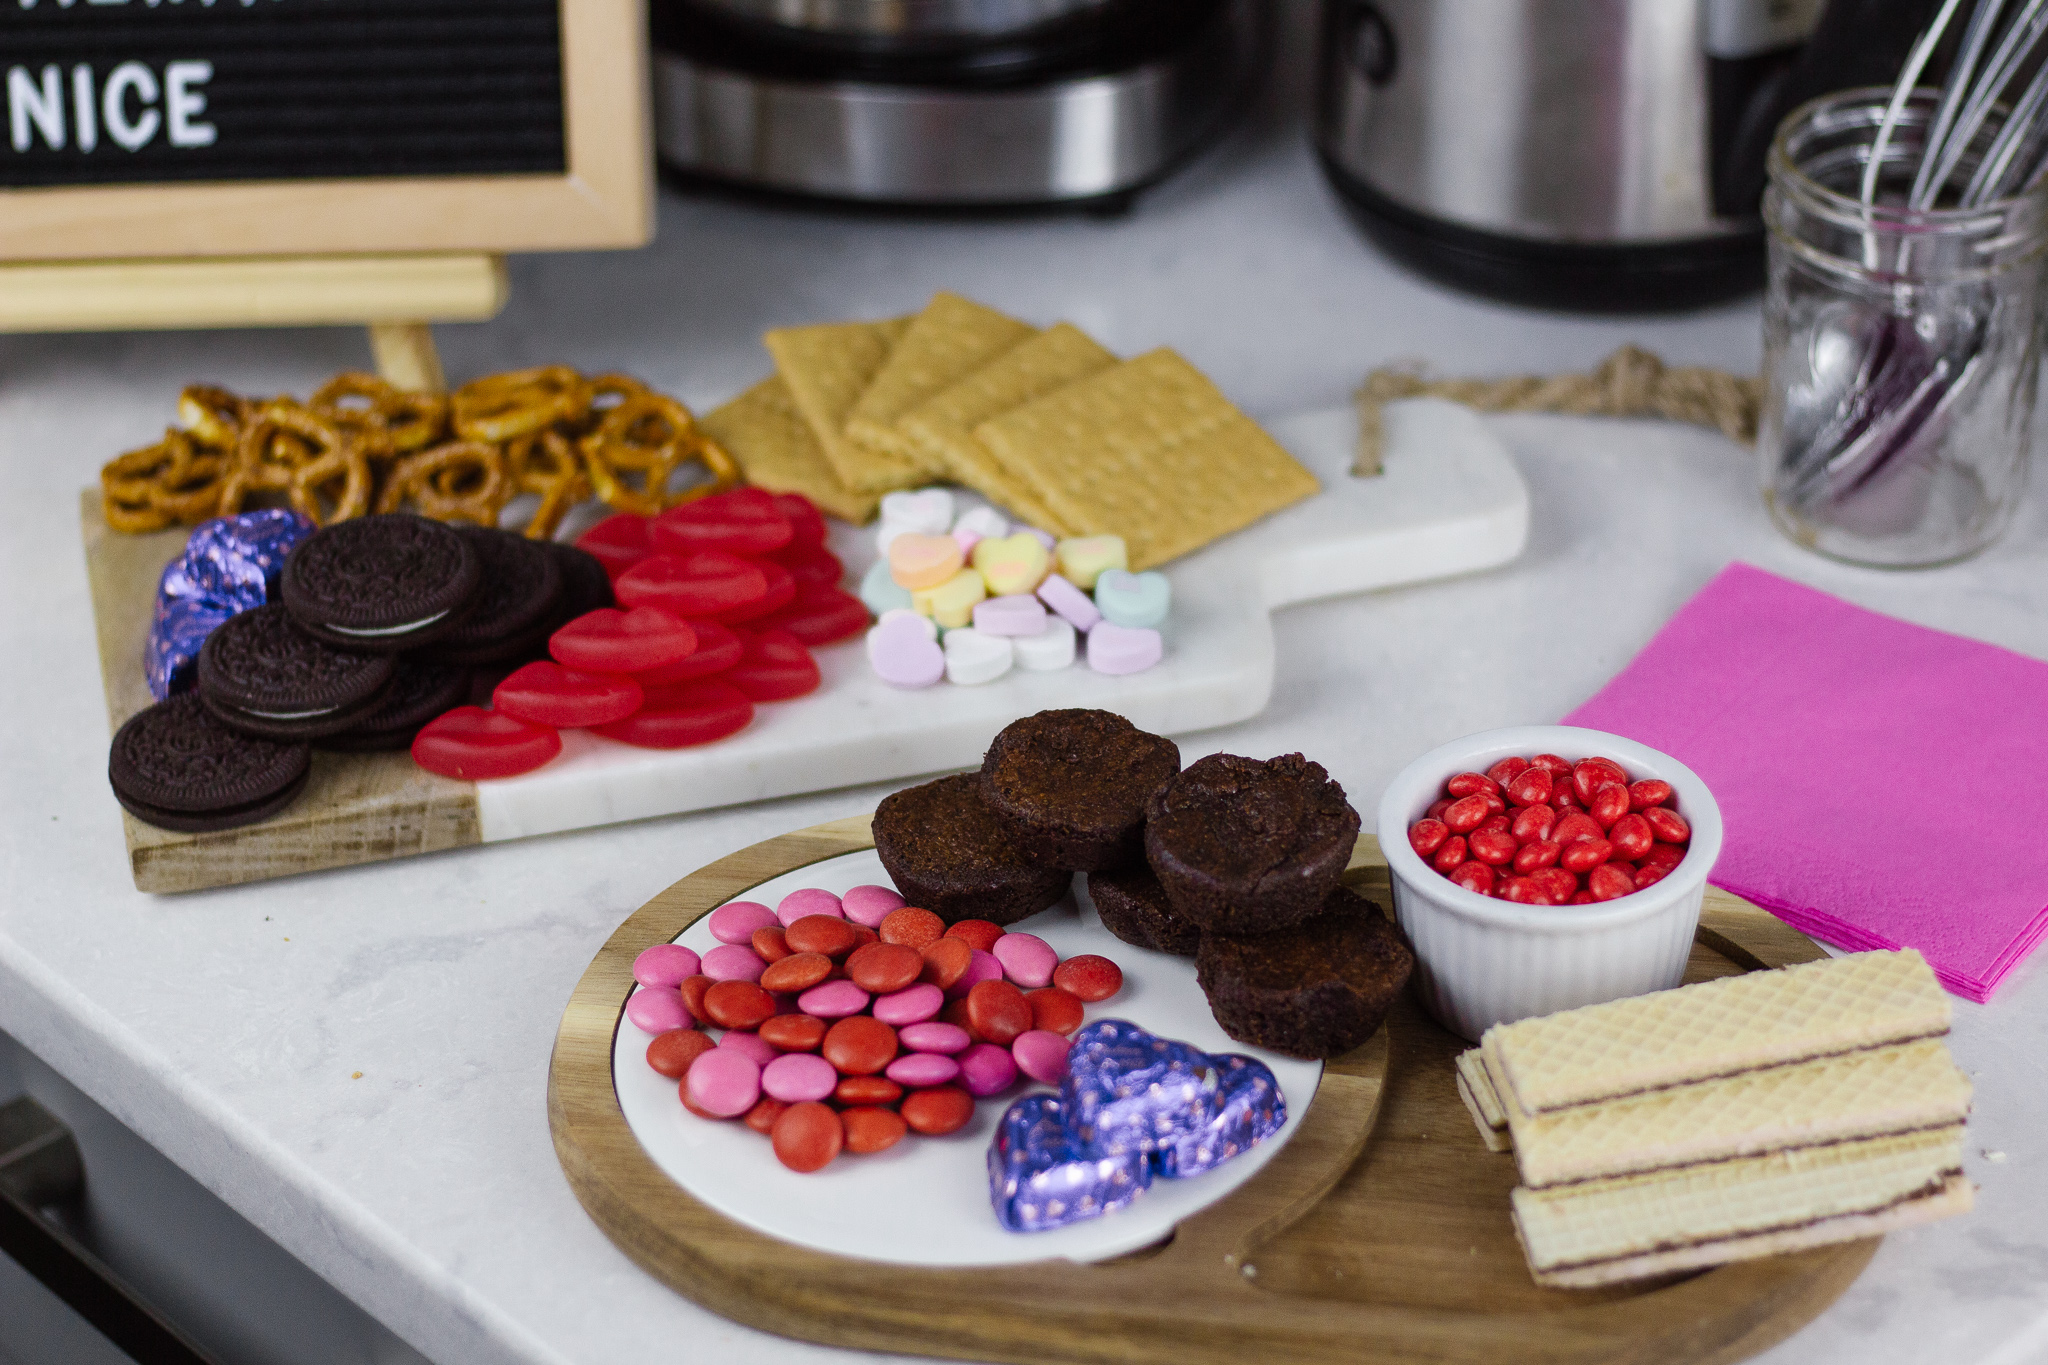 7 Valentines Day ideas for toddlers including toddler activities, toddler crafts, and tasty treats.